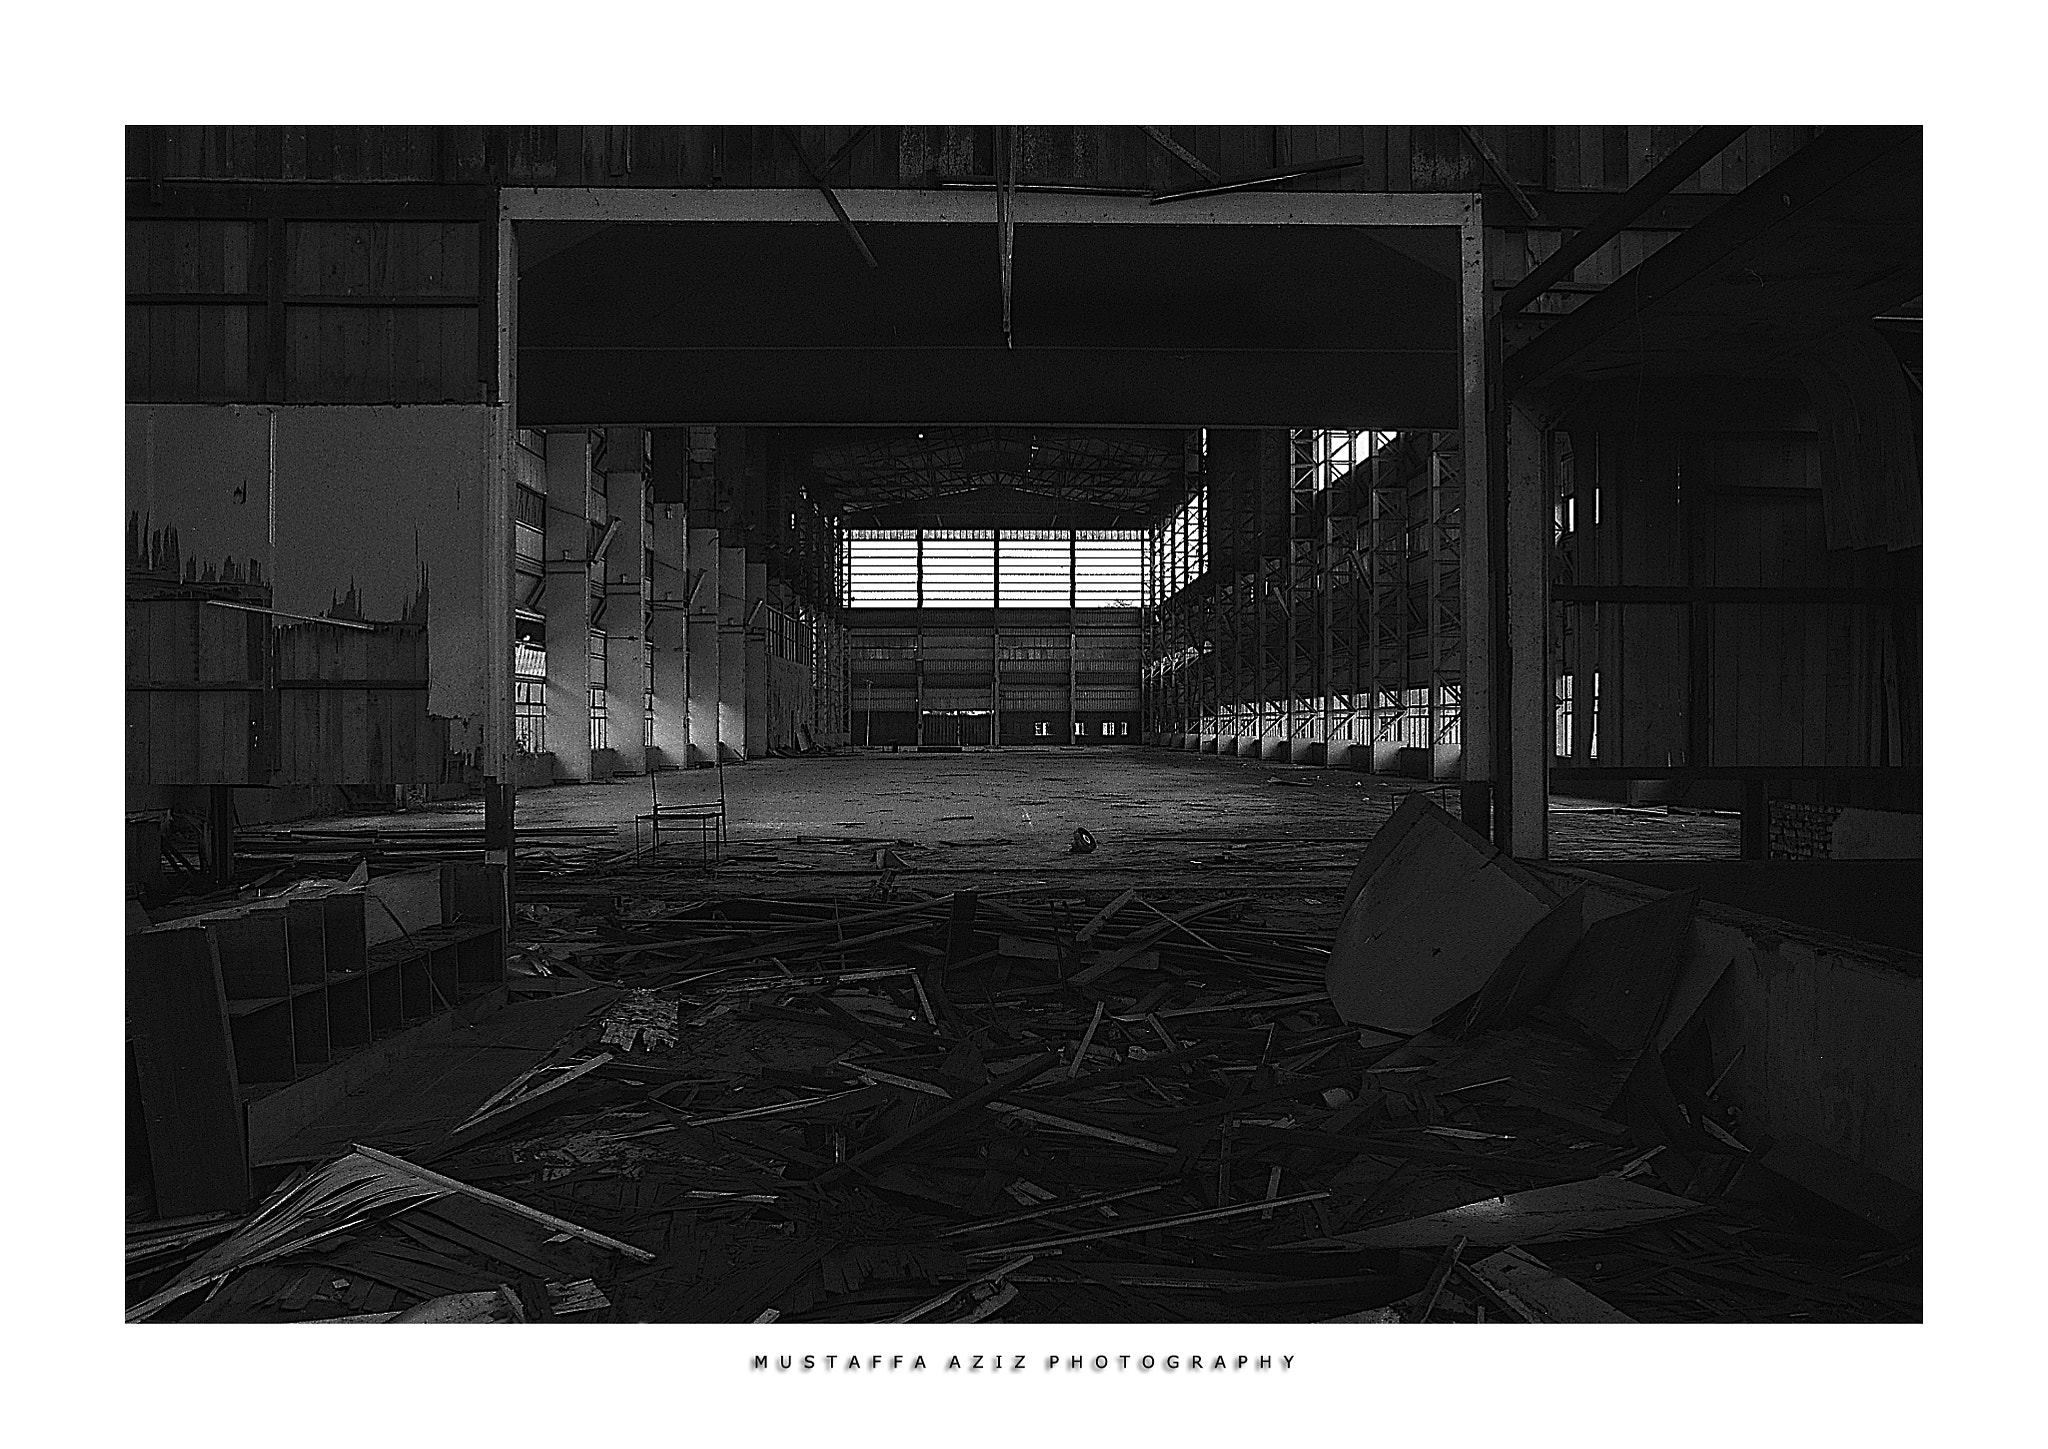 Photograph Old Warehouse by Mus Aziz on 500px